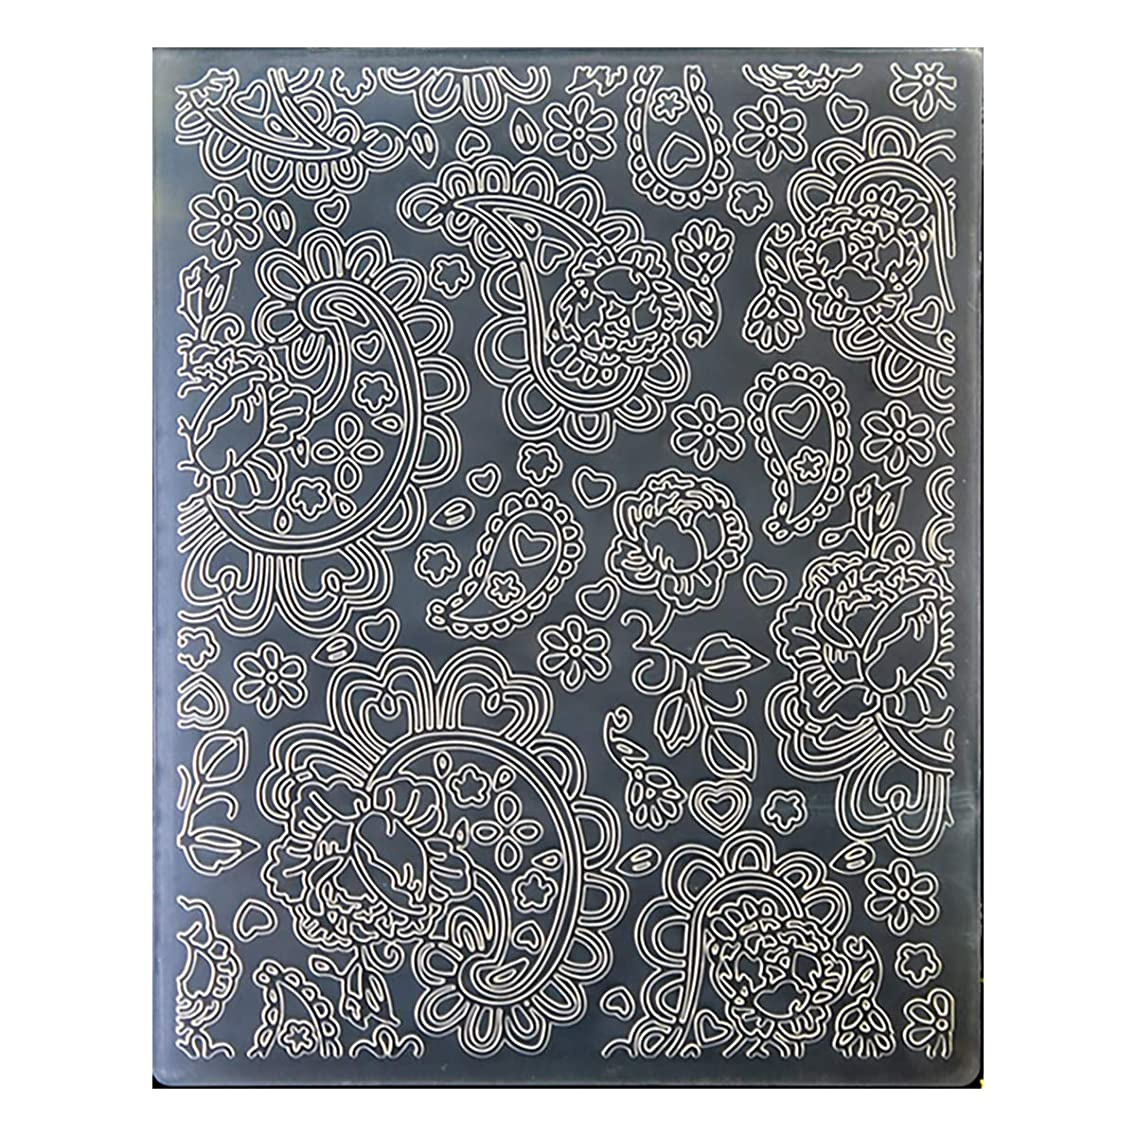 Kwan Crafts Heart Plastic Embossing Folders for Card Making Scrapbooking and Other Paper Crafts, 12.1x15.2cm